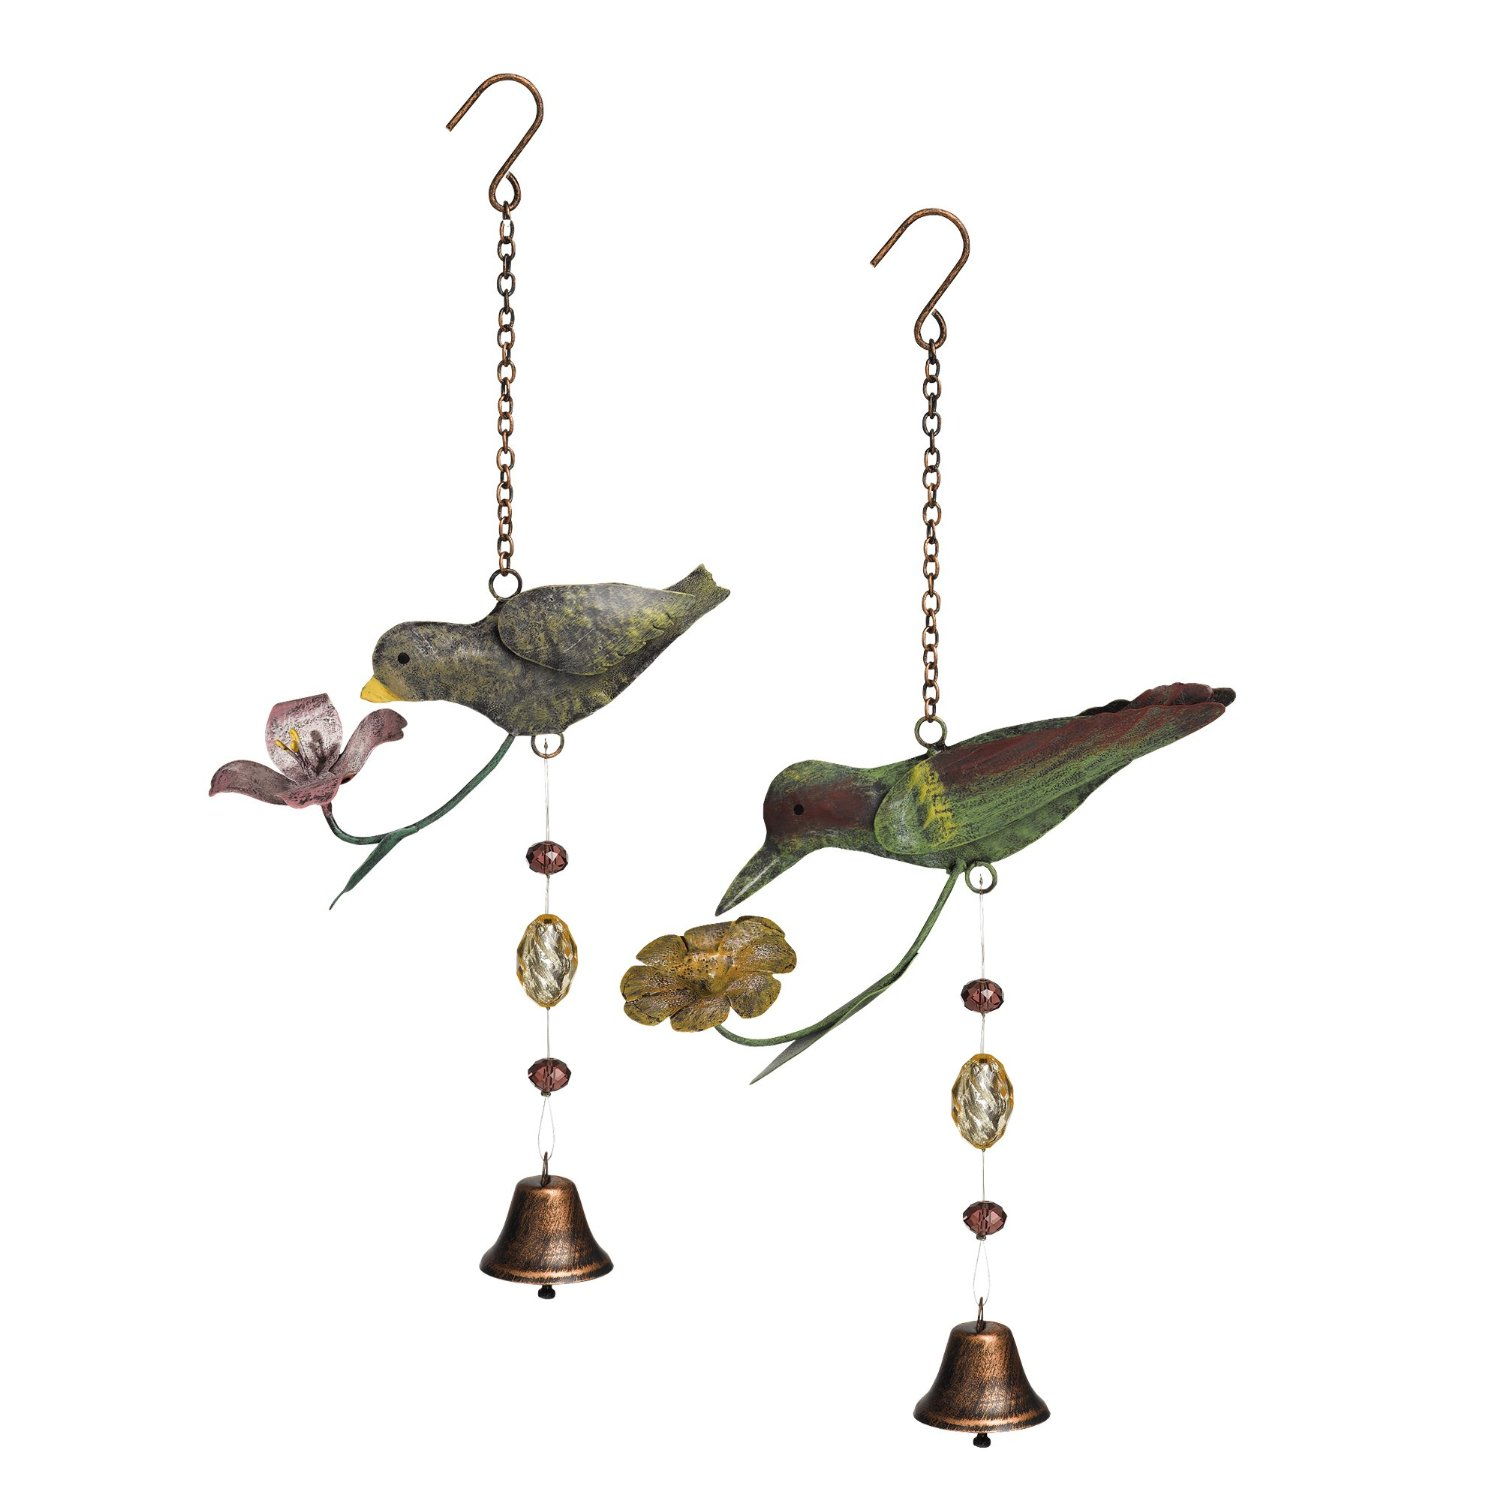 Grasslands Road Metal Bird Mobile with Bell Assortment, 12-Inch, 4-Pack